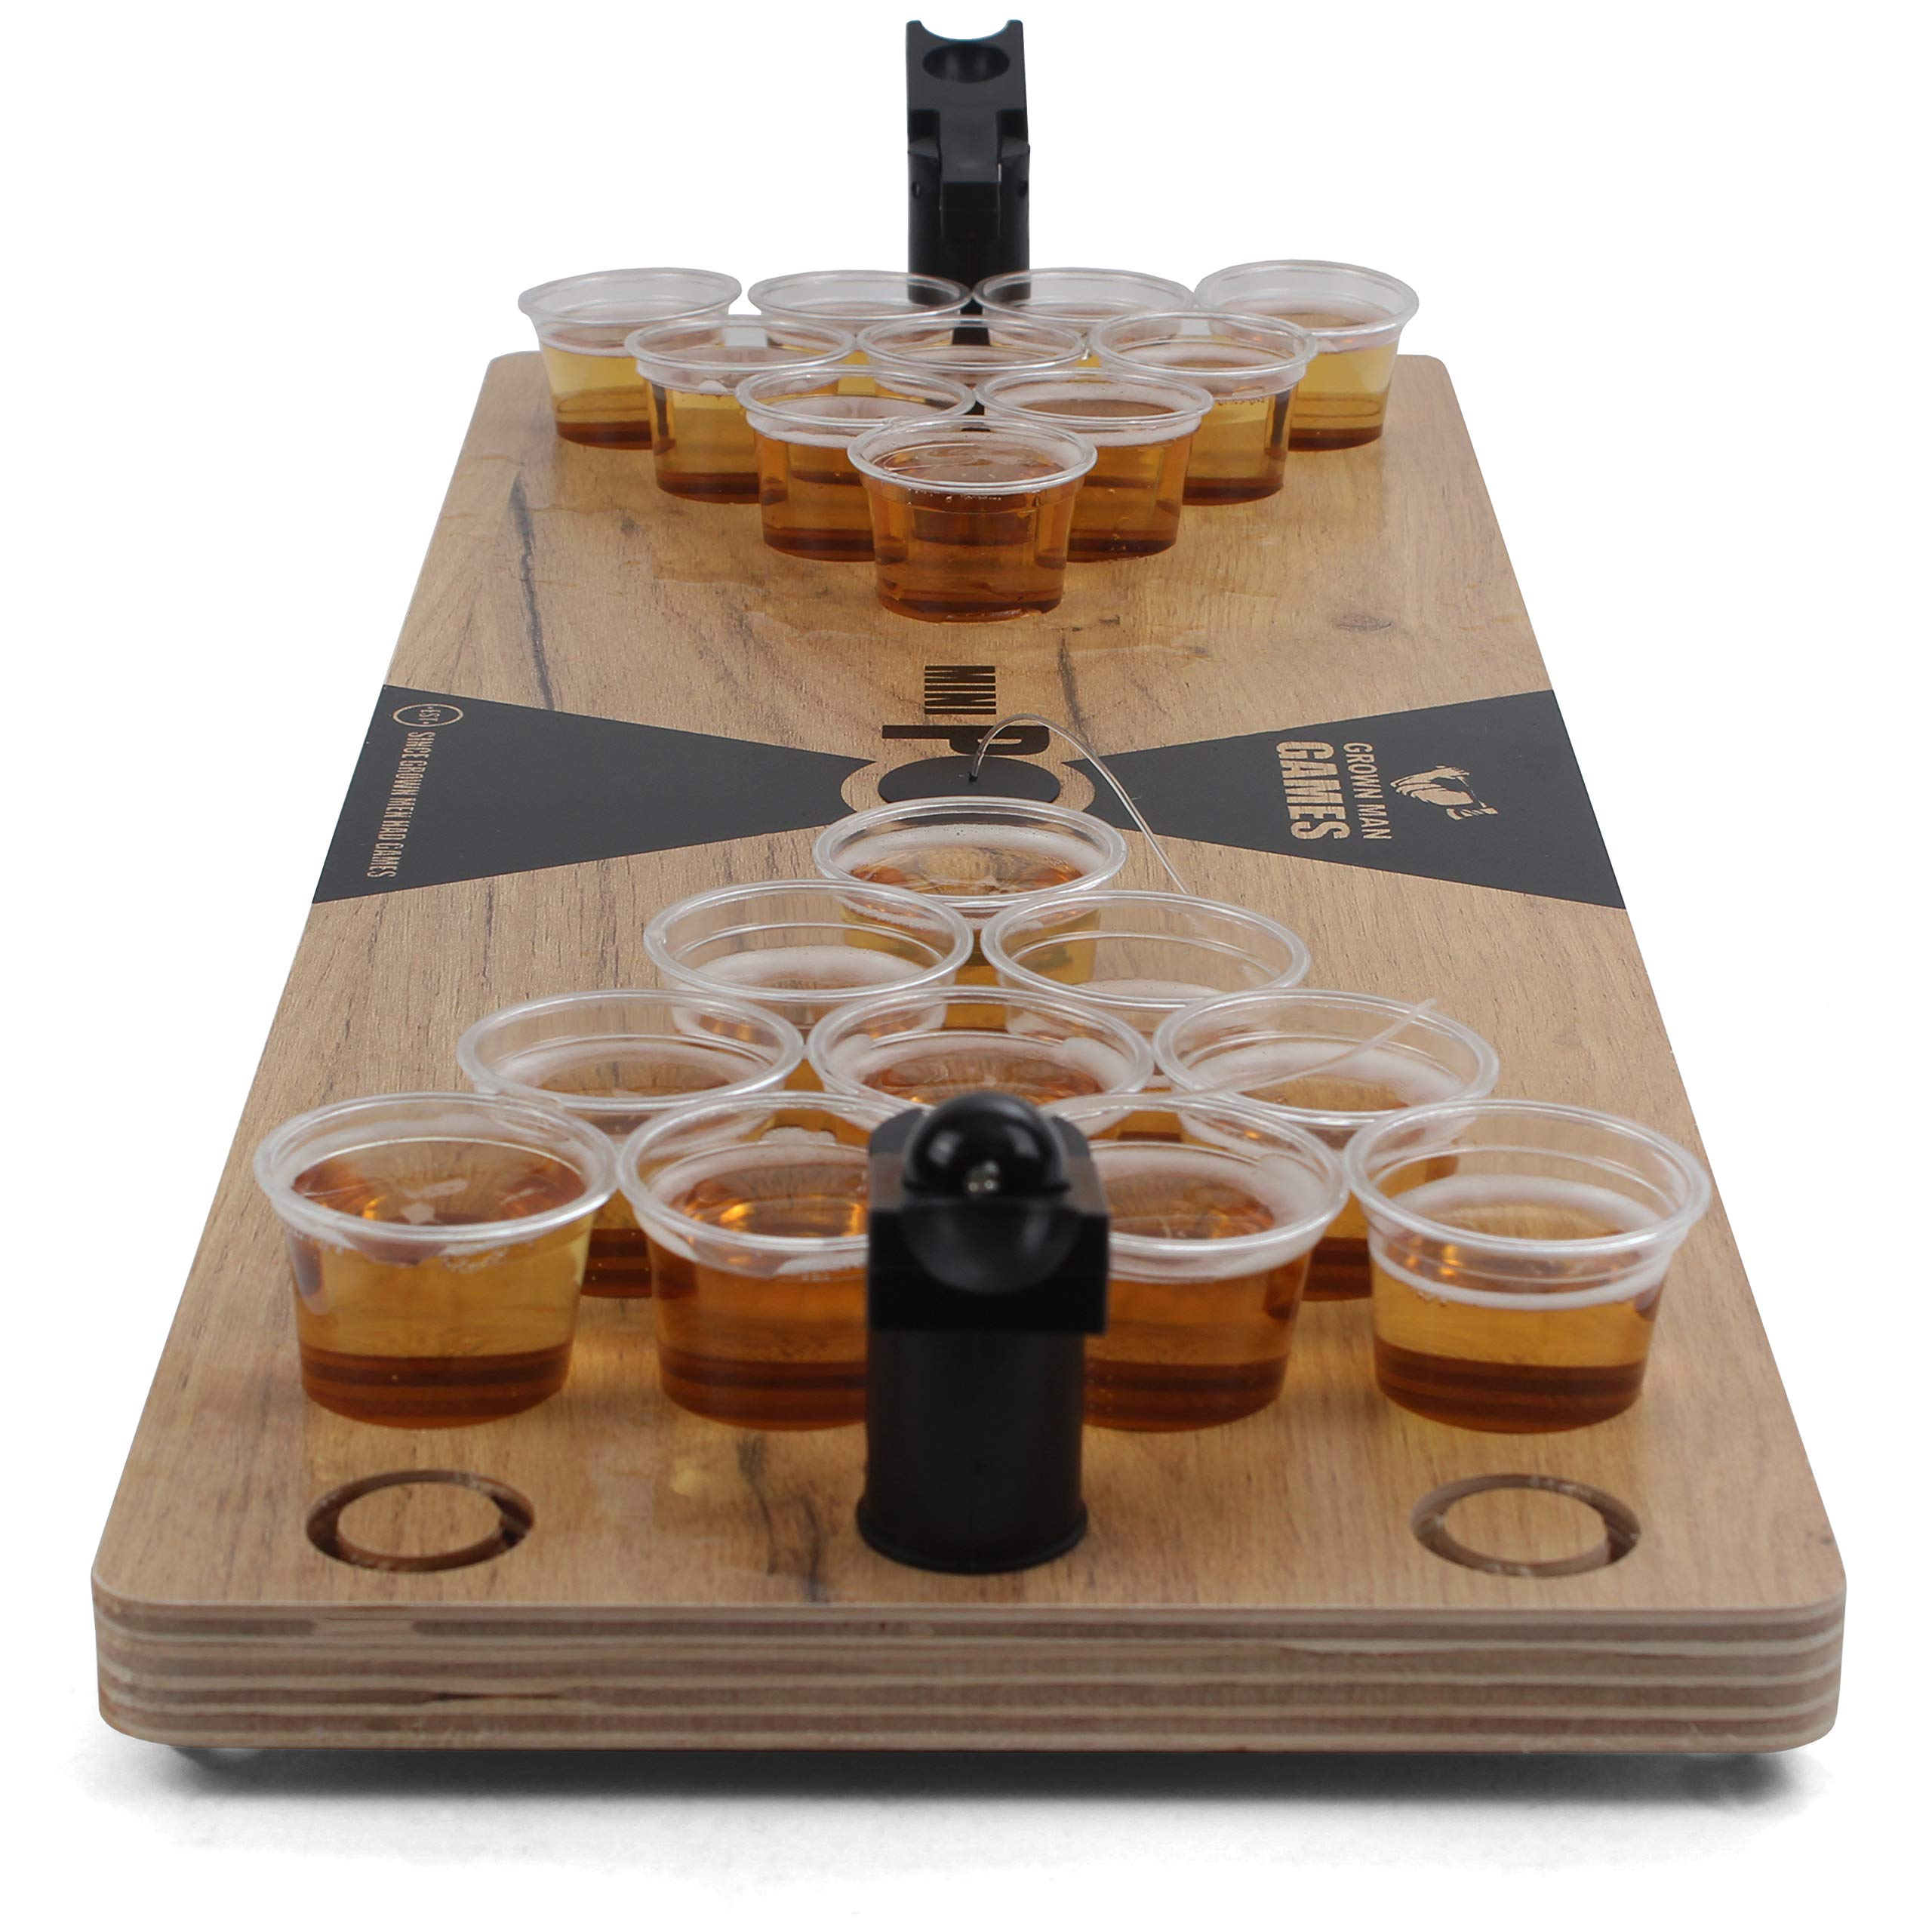 Grown Man Games Mini Beer Pong - Drinking Game - Party Game - Beer Game - Tabletop Beer Pong Table - Mini Pong Mini Game - Tabletop Beer Pong Set by Grown Man Games